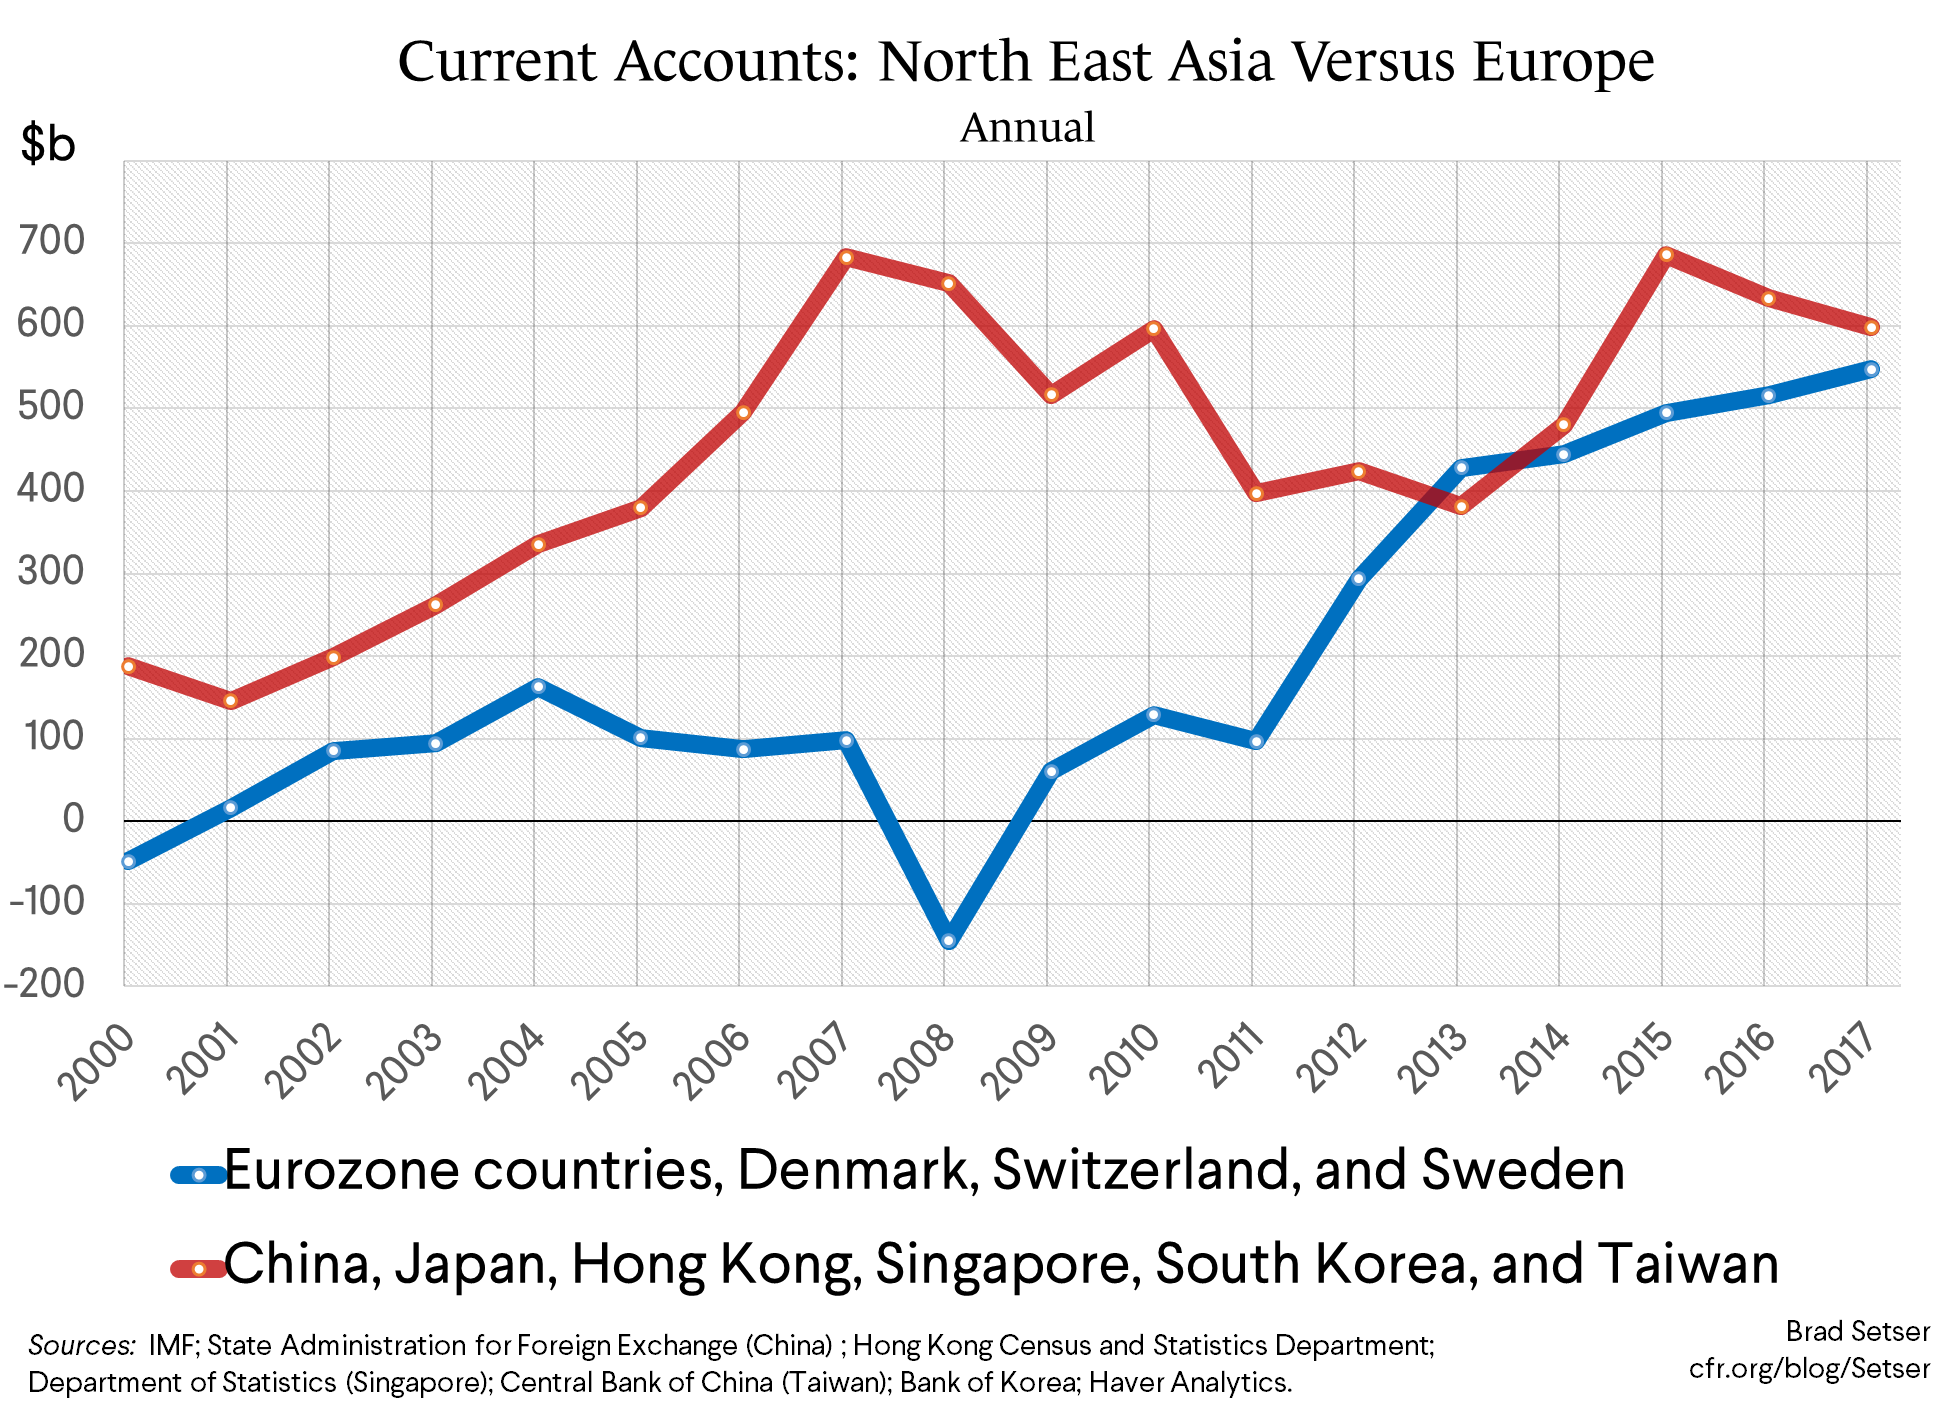 Asia's Central Banks and Sovereign Funds Are Back